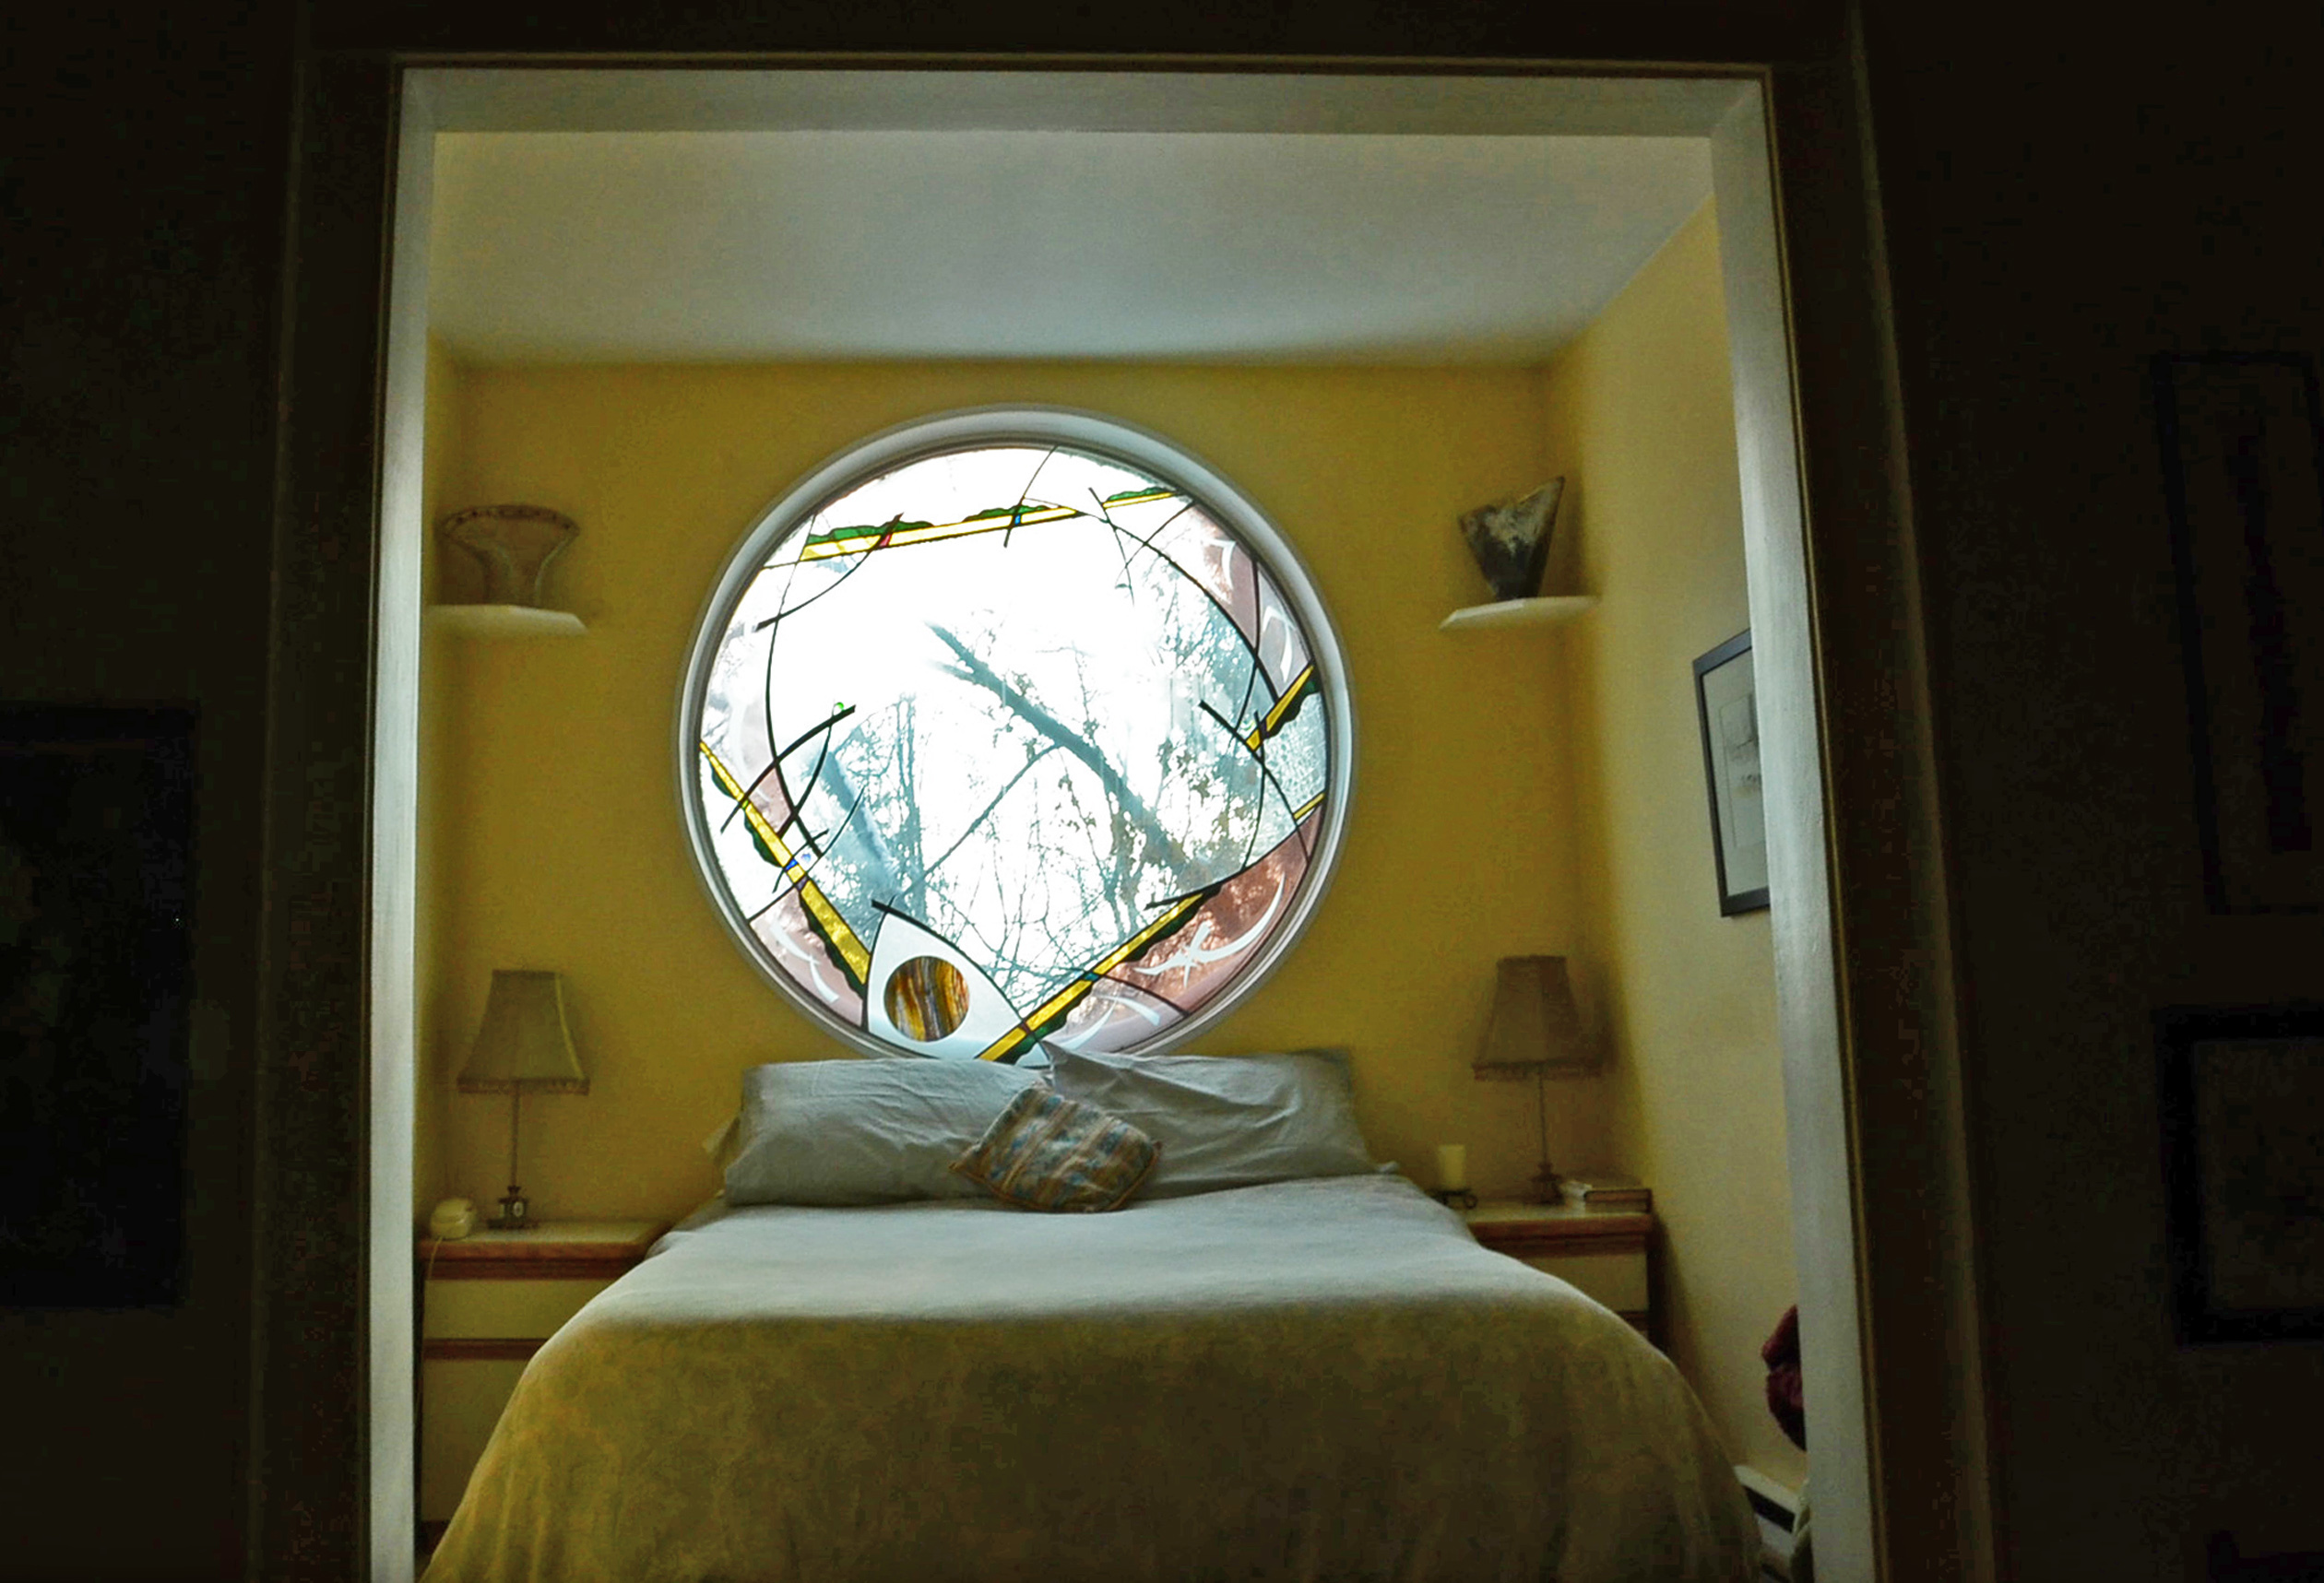 The master bedroom of Holden and Bolen's home is outfitted with a custom stained glass window. (Bridget Yard/CBC)